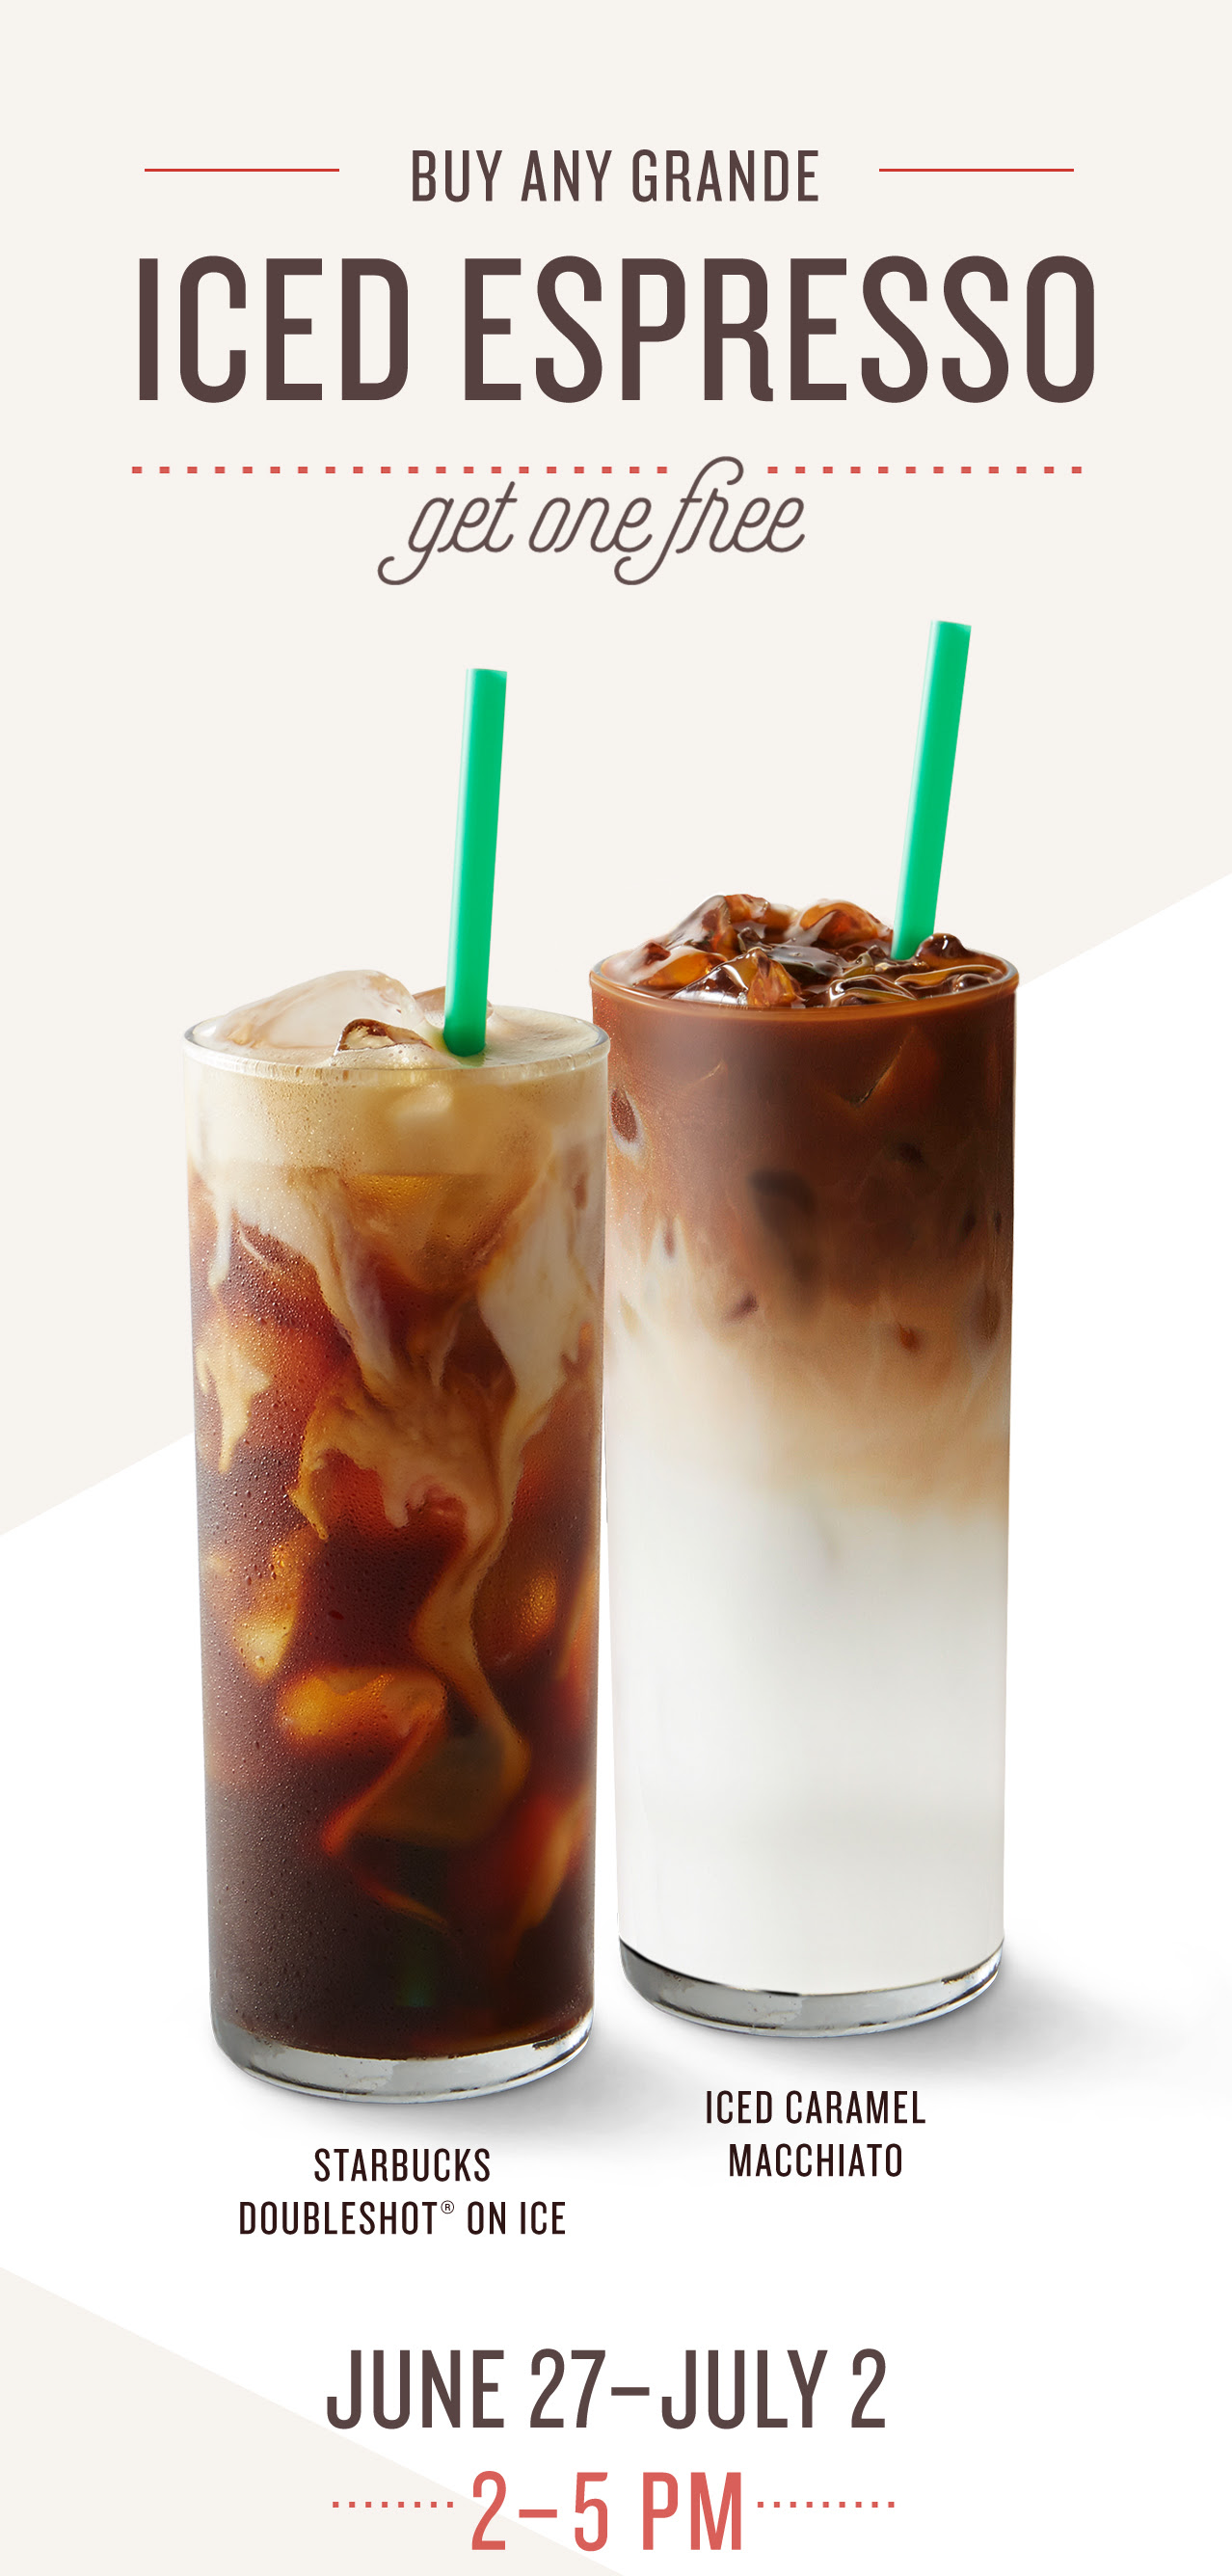 Buy Any Grande Iced Espresso Get one Free  Starbucks Doubleshot® On Ice  Iced Caramel Macchiato  June 27 – July 2, 2 – 5 PM